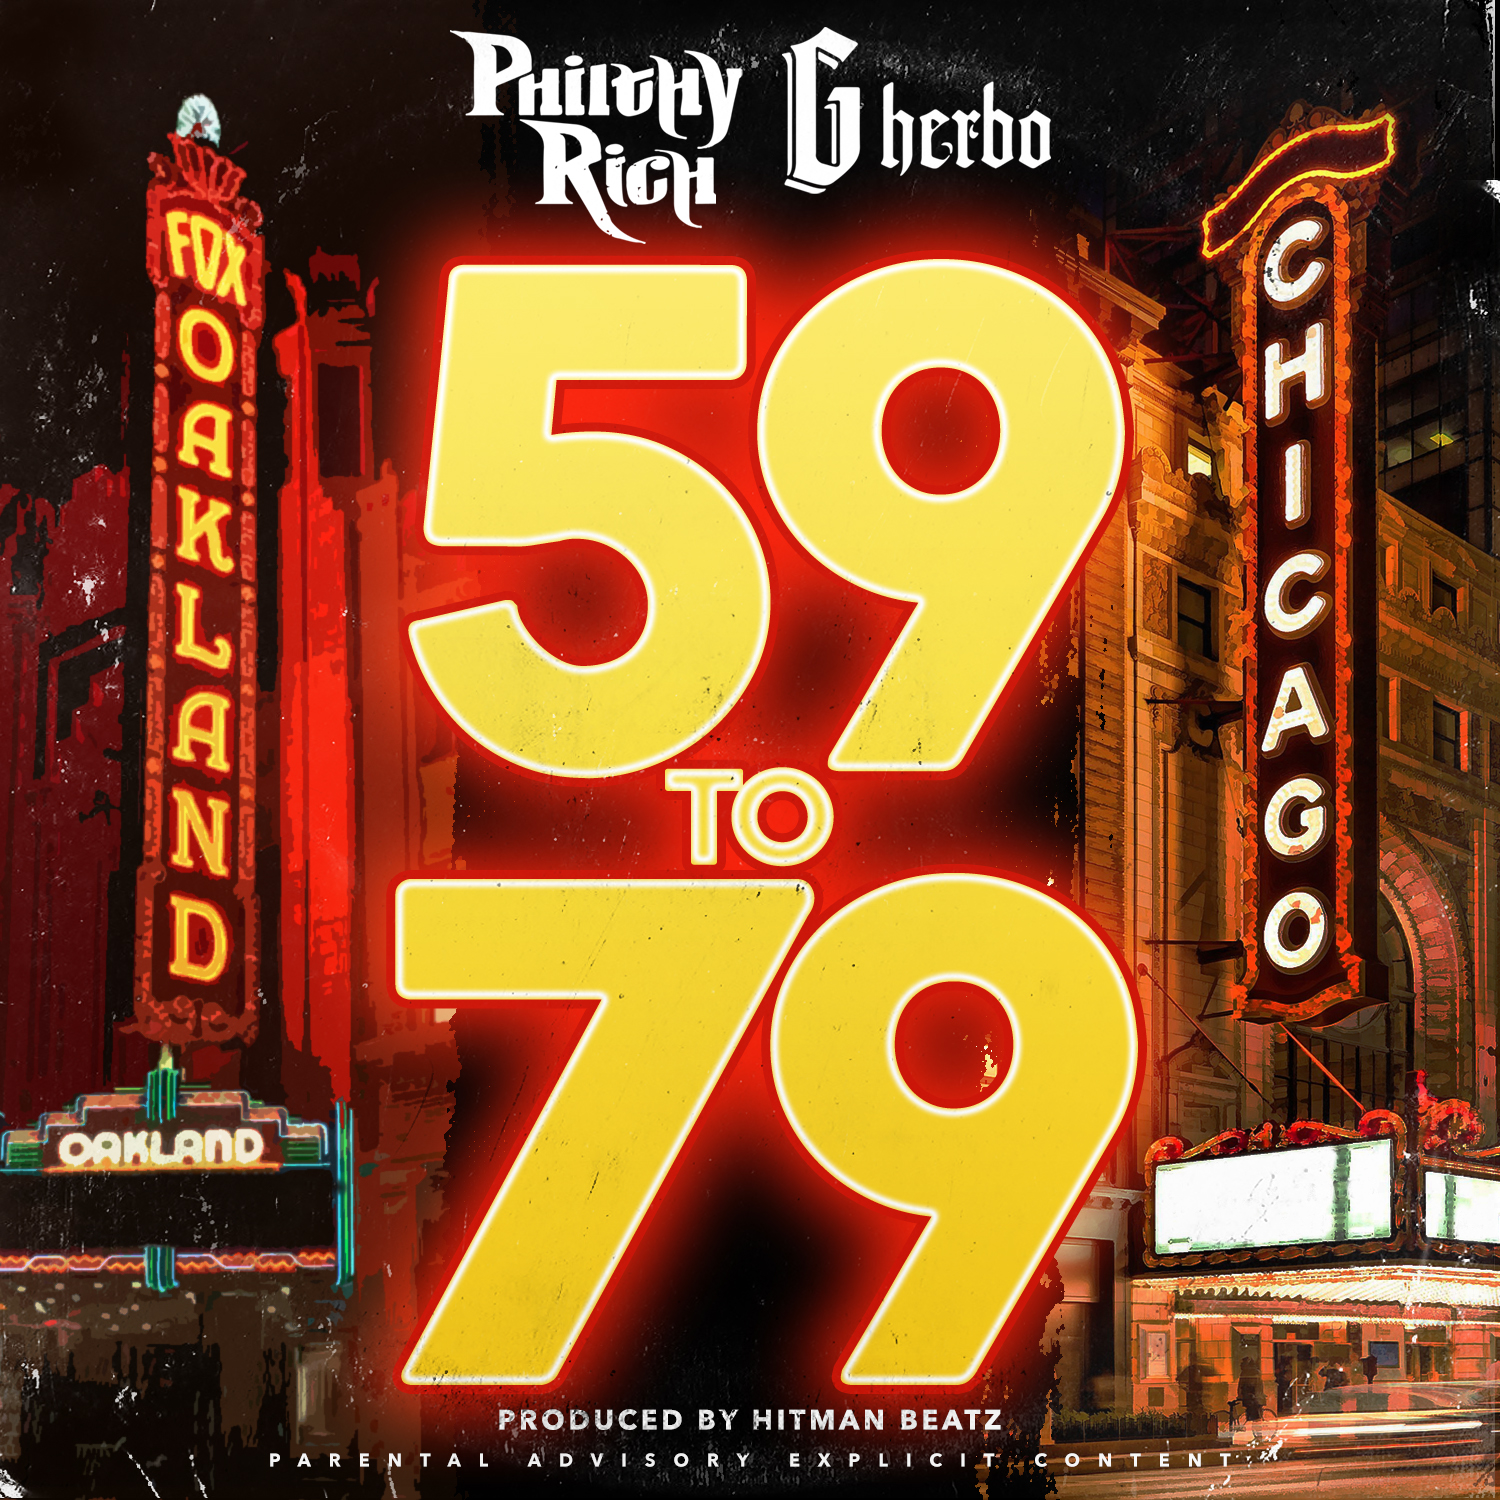 Philthy Rich x G Herbo - 59 to 79 - 02